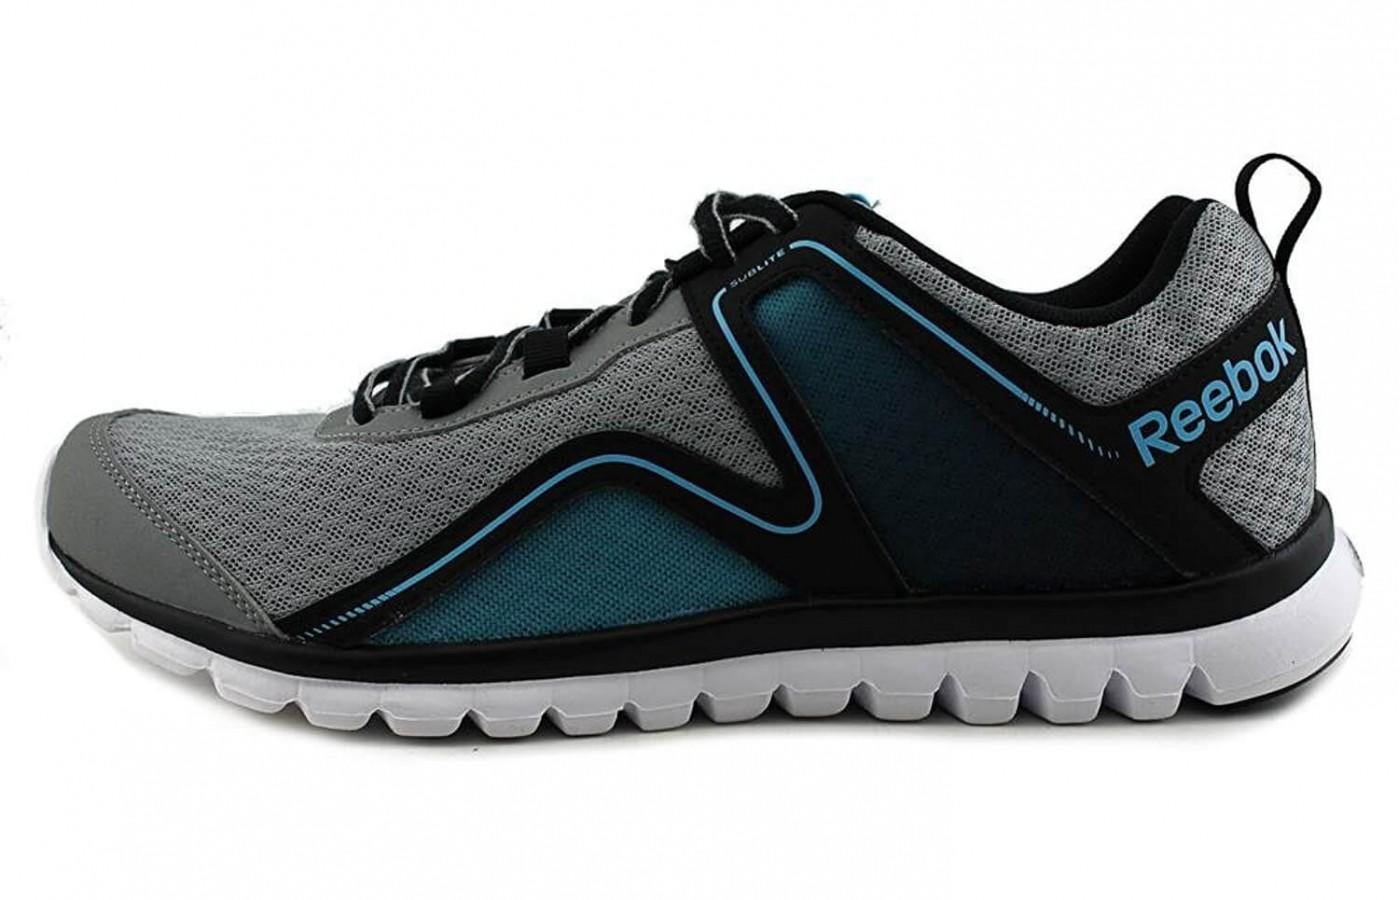 Breathable upper allows the entire foot to remain cool and dry